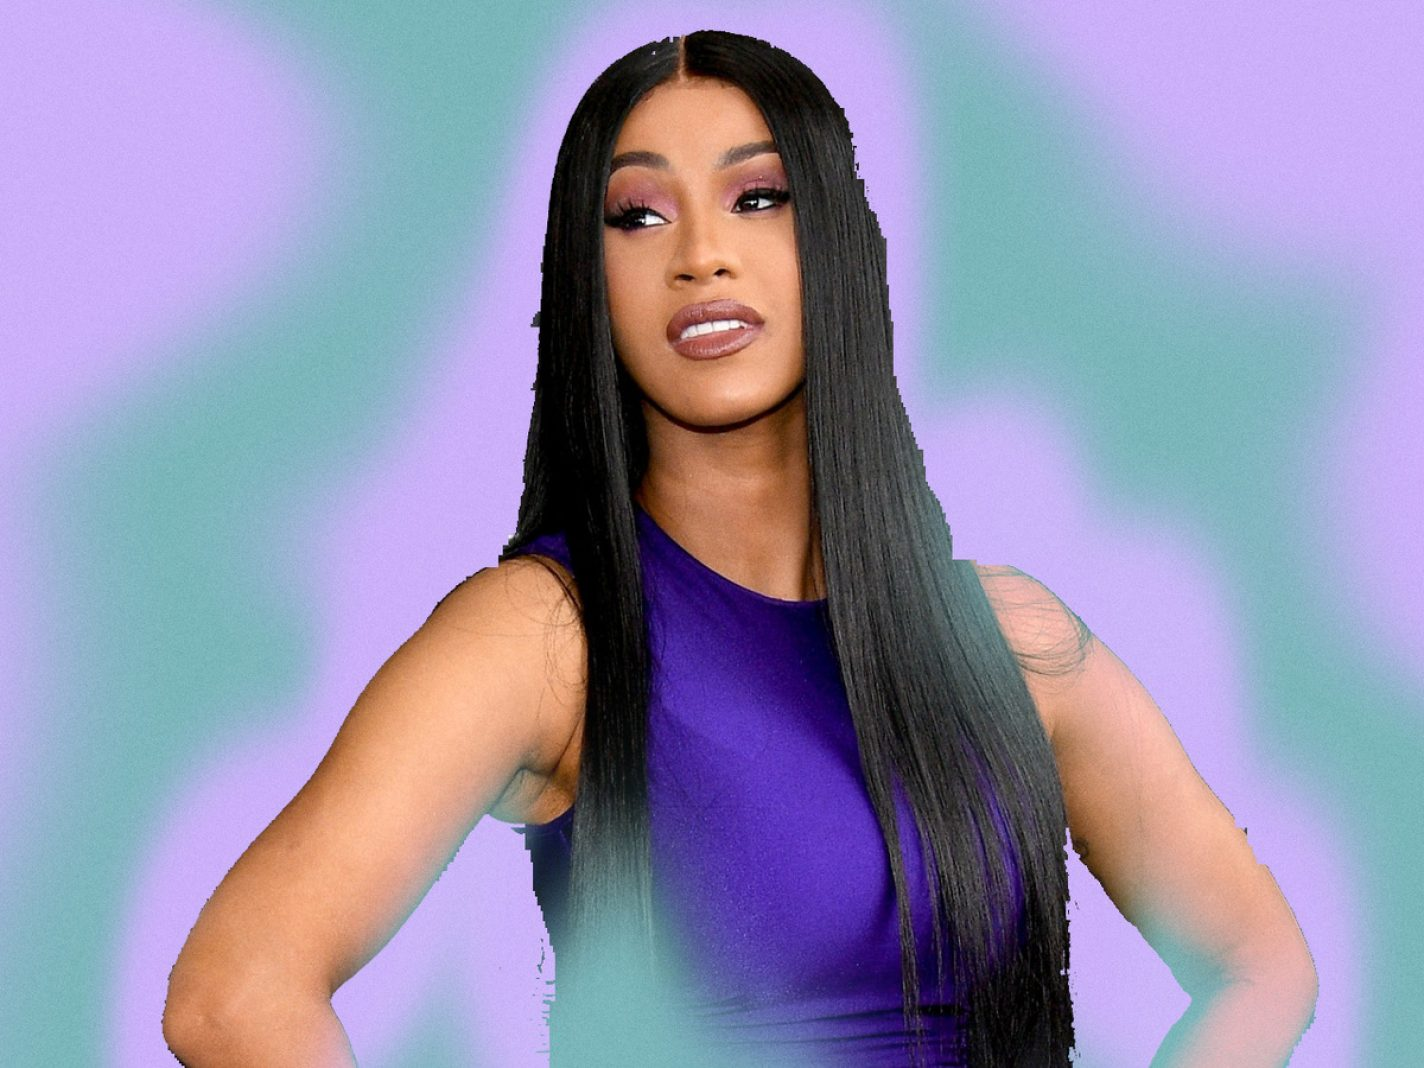 Cardi B responds after being called a